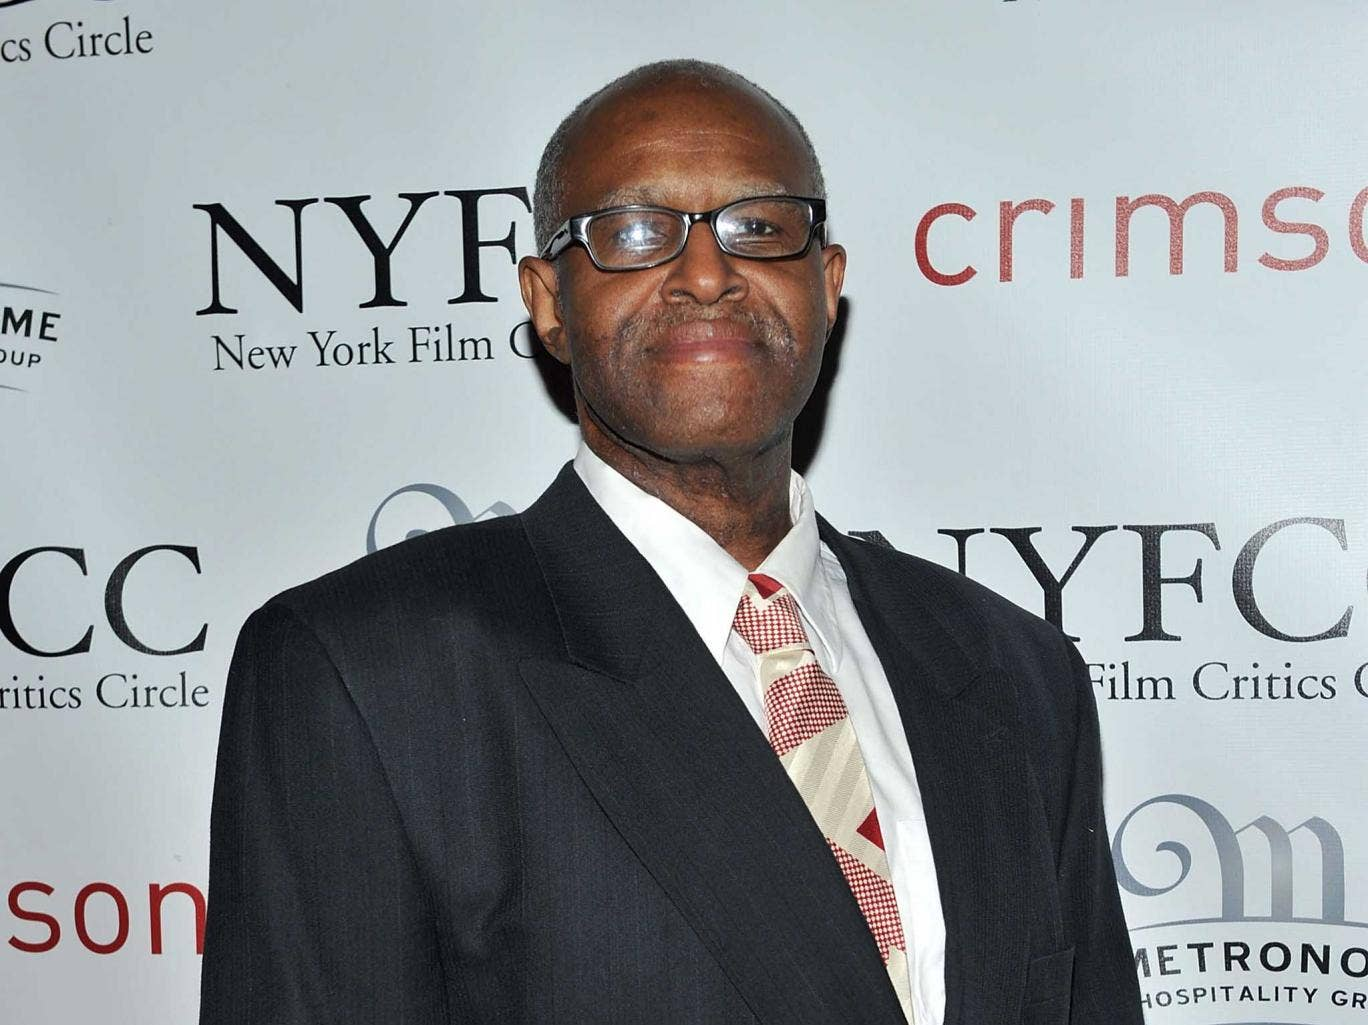 New York critic Armond White, known for his contrarian film reviews, has left the Critics Circle